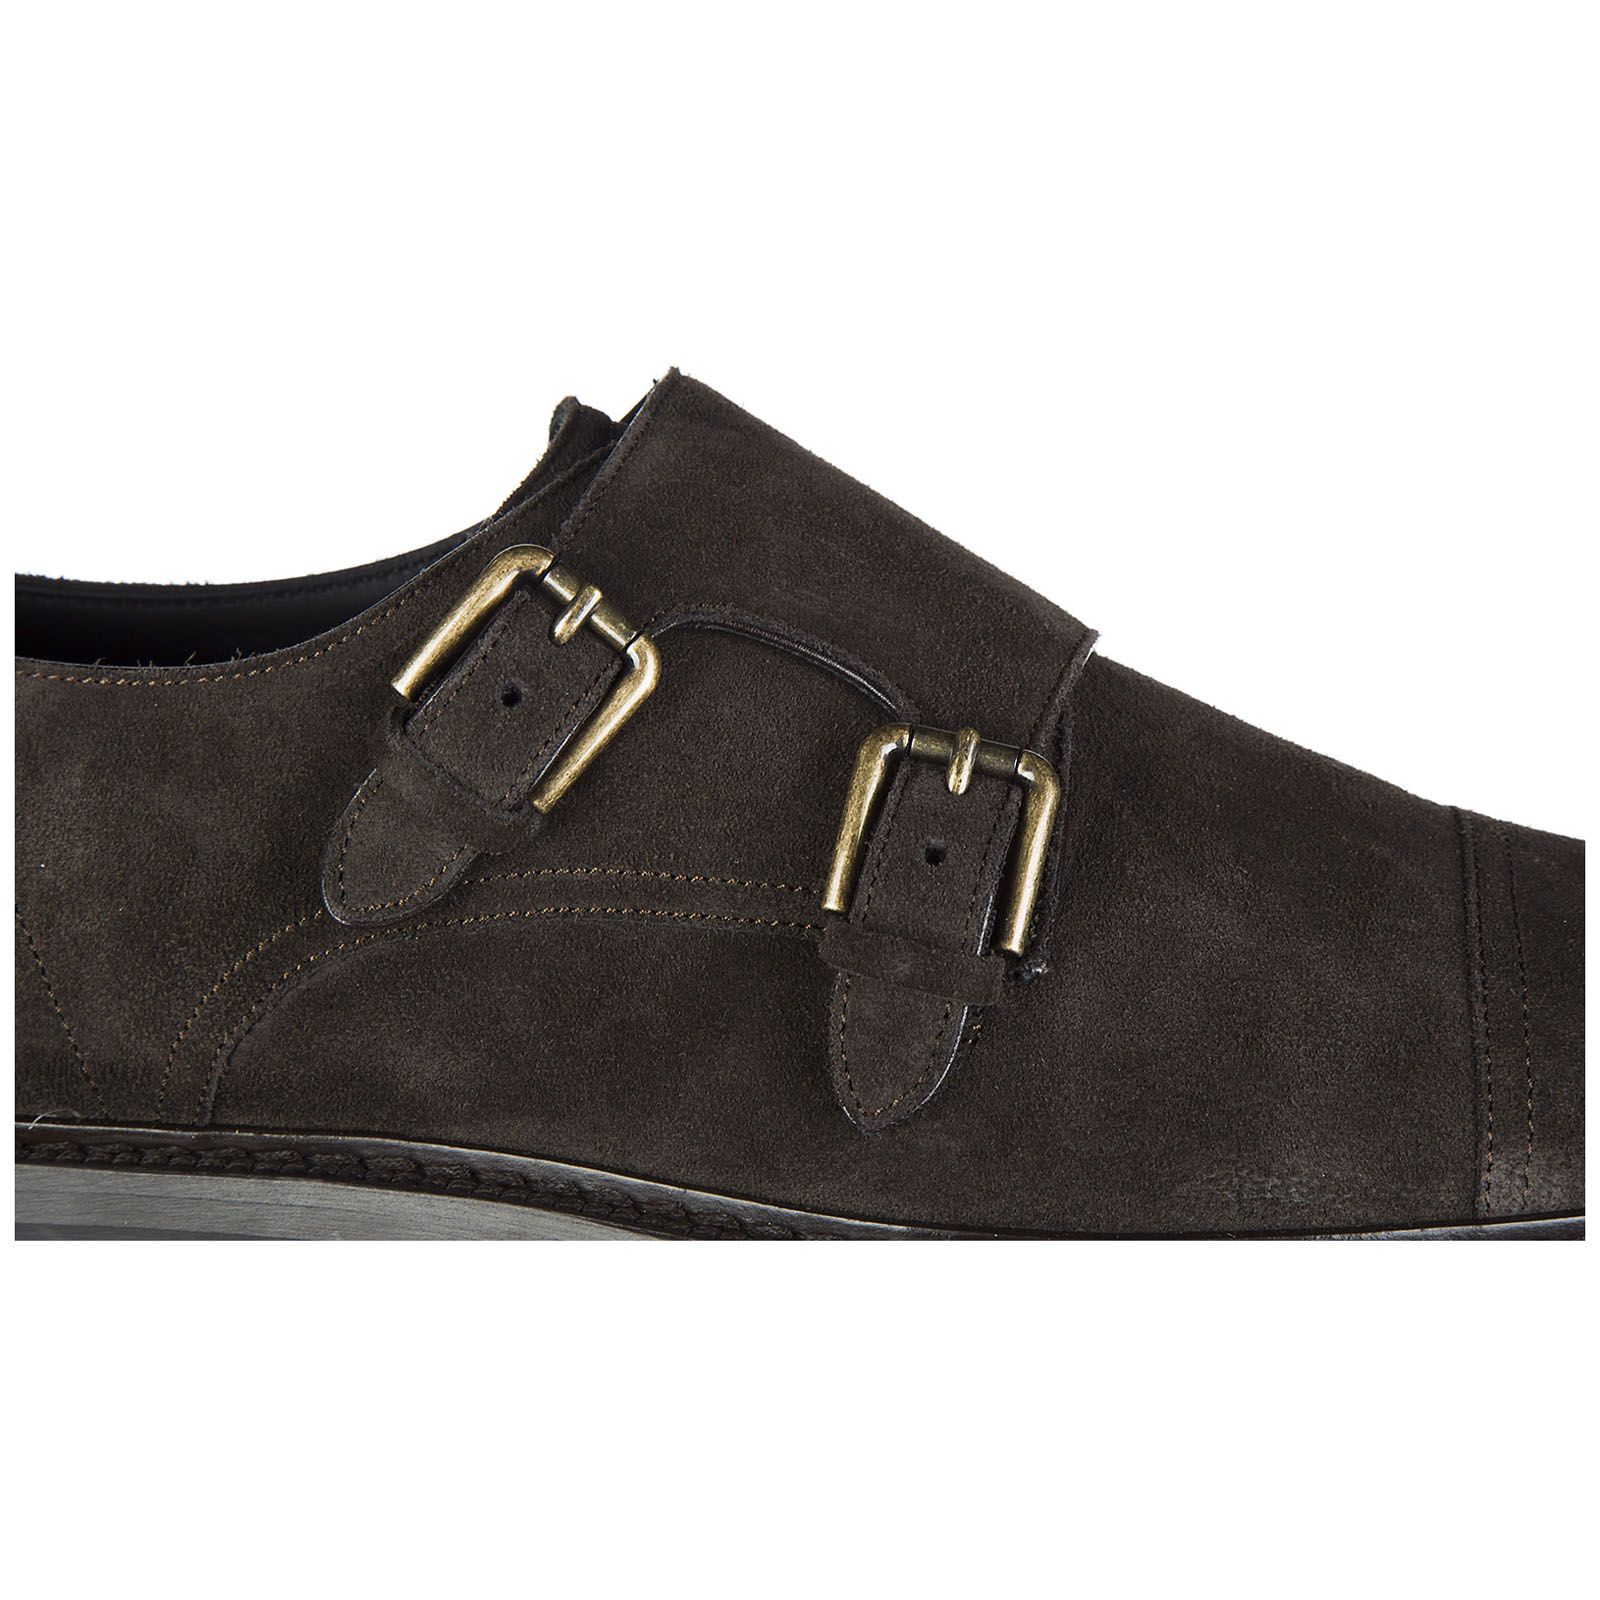 5199c3bd471923 Chaussures à lacets Dolce&Gabbana Marsala A10223AI37280051 ebano ...